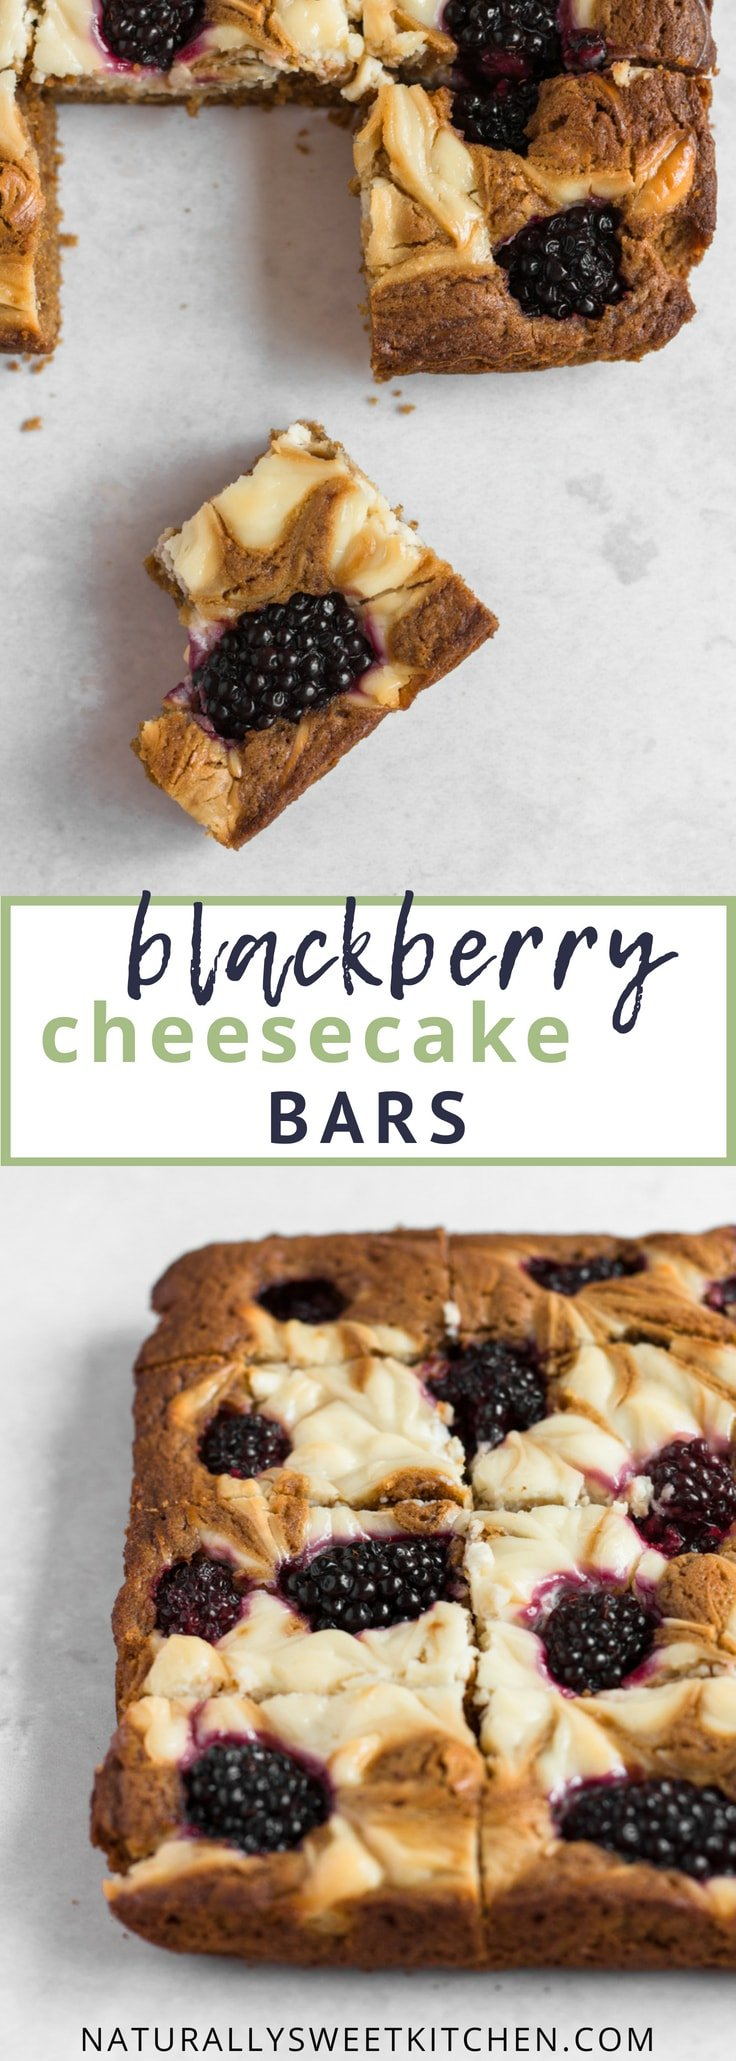 Your new go-to blackberry recipe! A quick and easy recipe for blackberry cheesecake bars that are chewy, delicious and refined sugar free! Get this recipe and more refined sugar free desserts at naturallysweetkitchen.com | Naturally Sweet Kitchen | Refined sugar free desserts | blackberry recipes | Blackberry bars #blackberryrecipe #refinedsugarfree